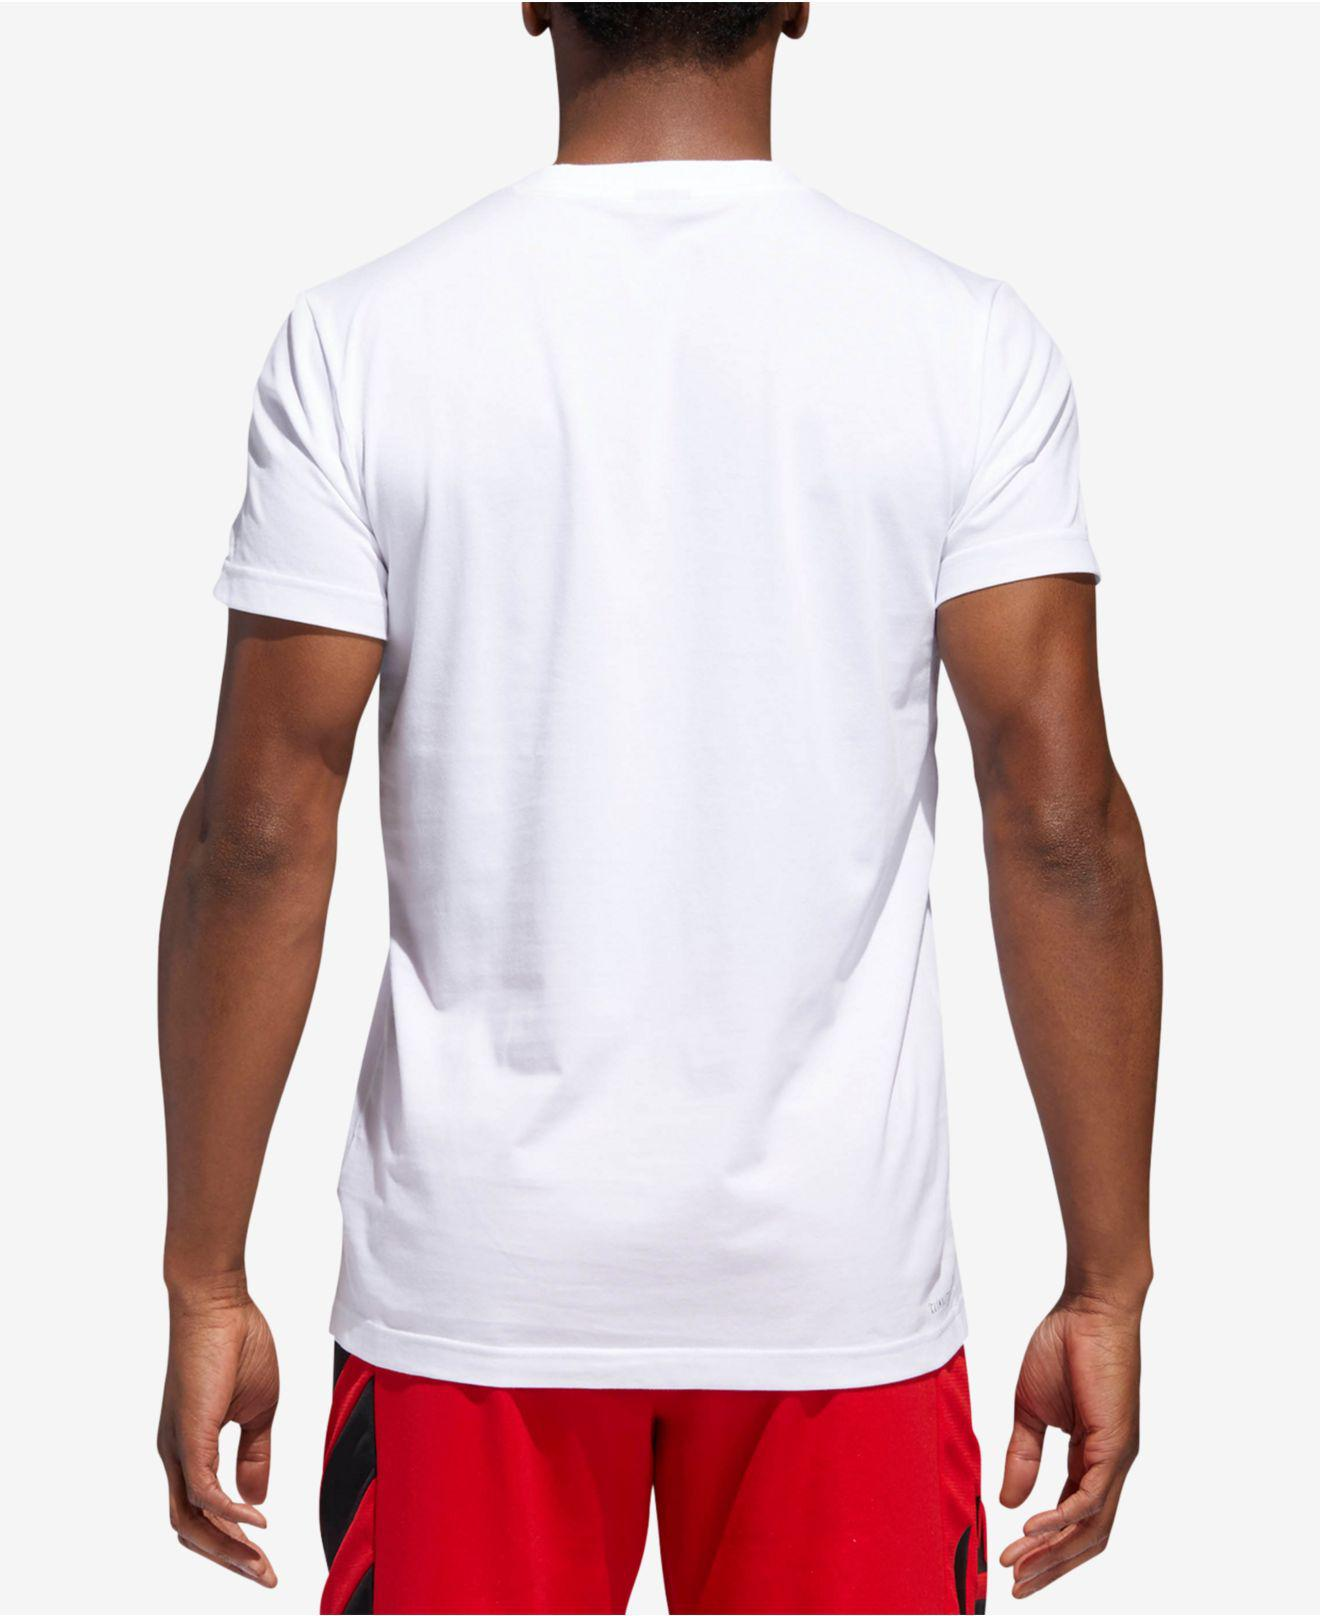 eadc4ccada4 ... lyst adidas james harden t shirt in white for men ...